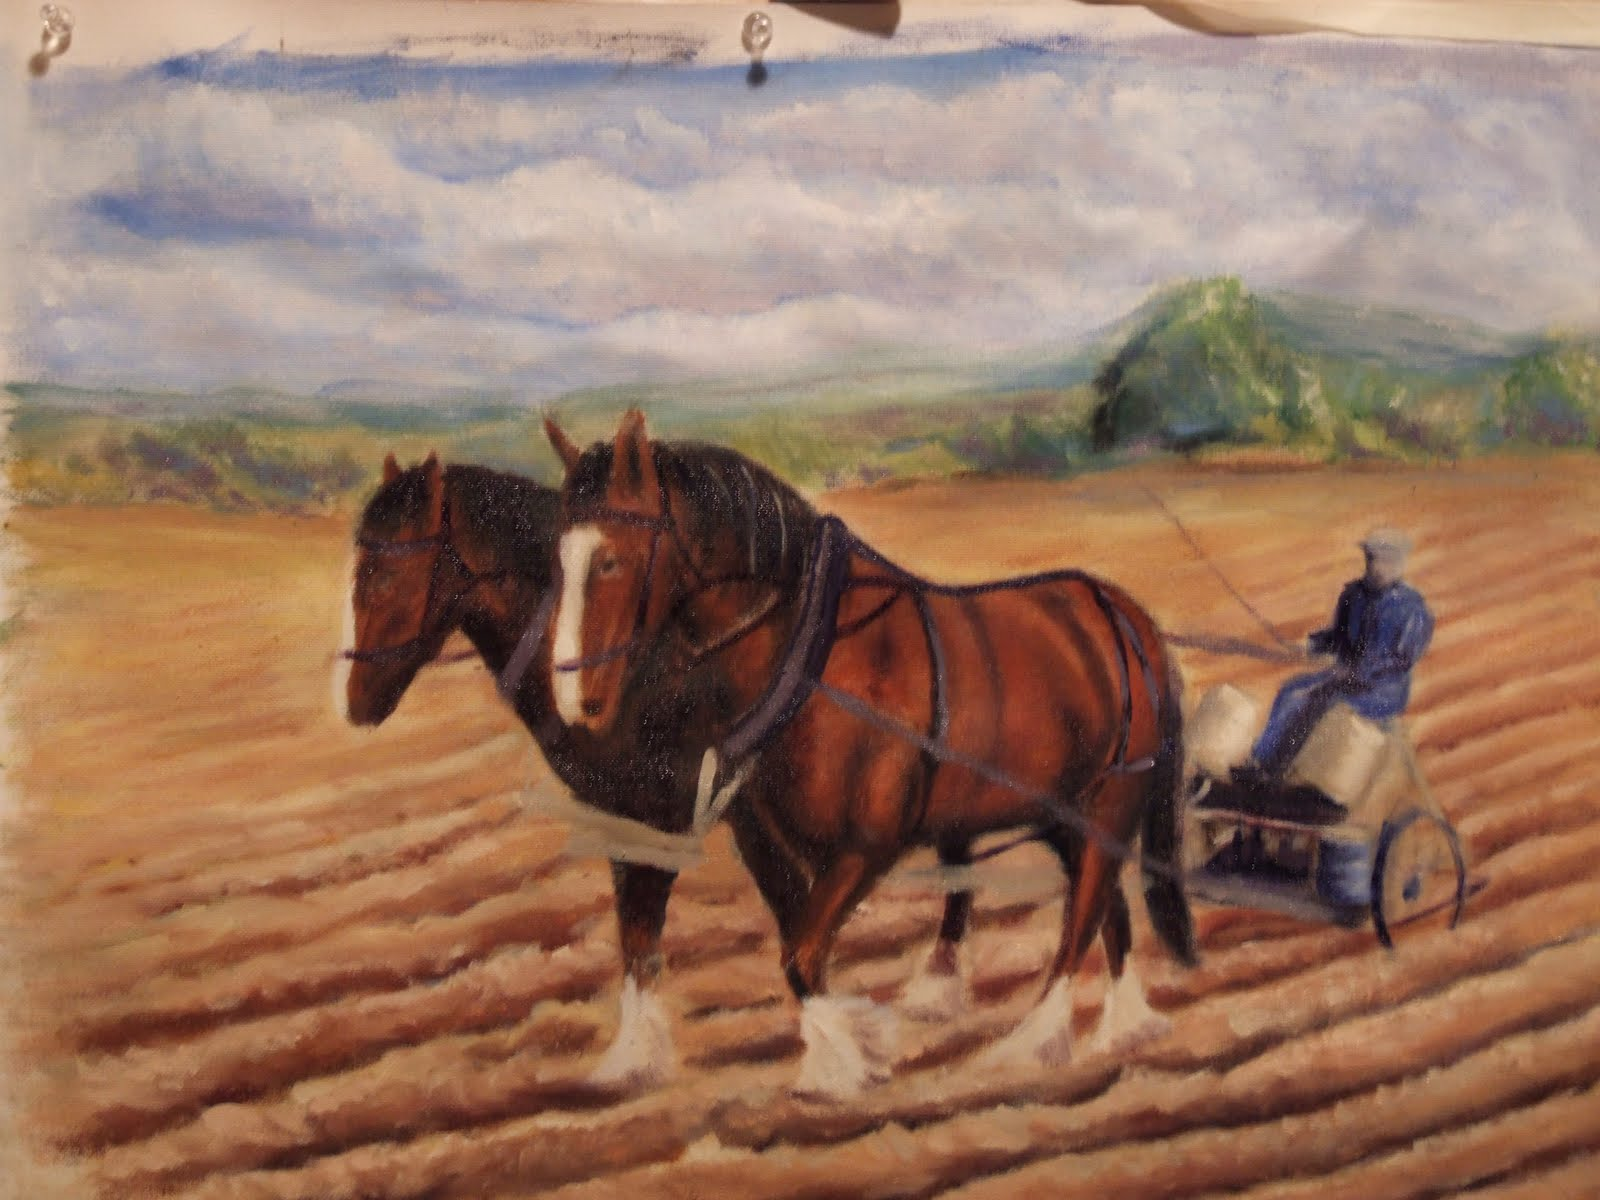 Plough horse oil painting step 8